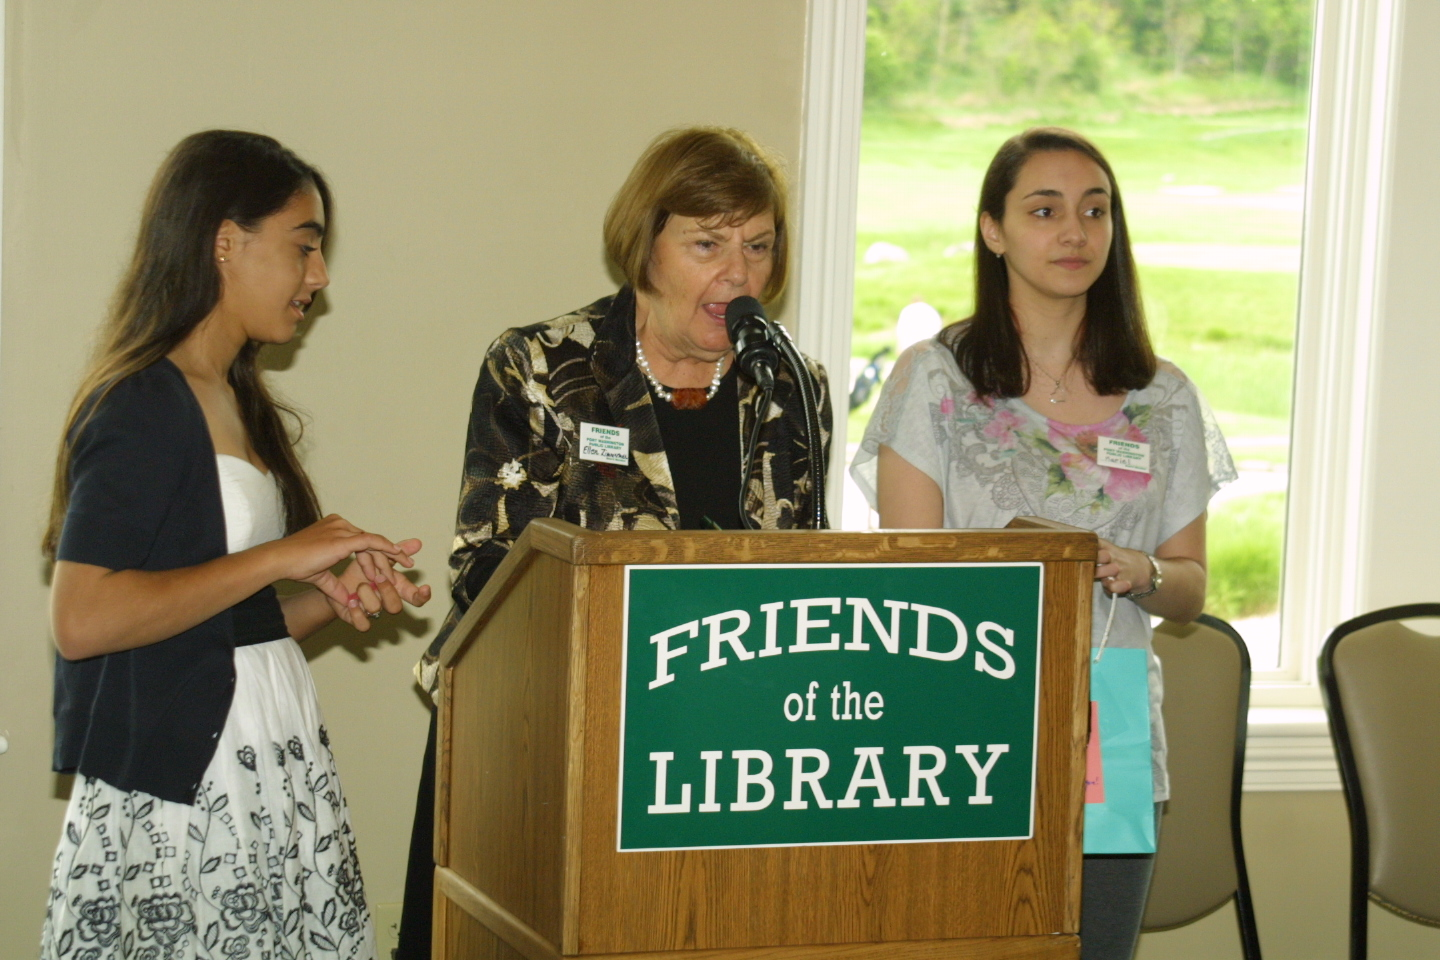 Ellen Zimmerman calls out raffle winners with assistance from teen volunteers Annelise Meyding and Mariel O'Connell